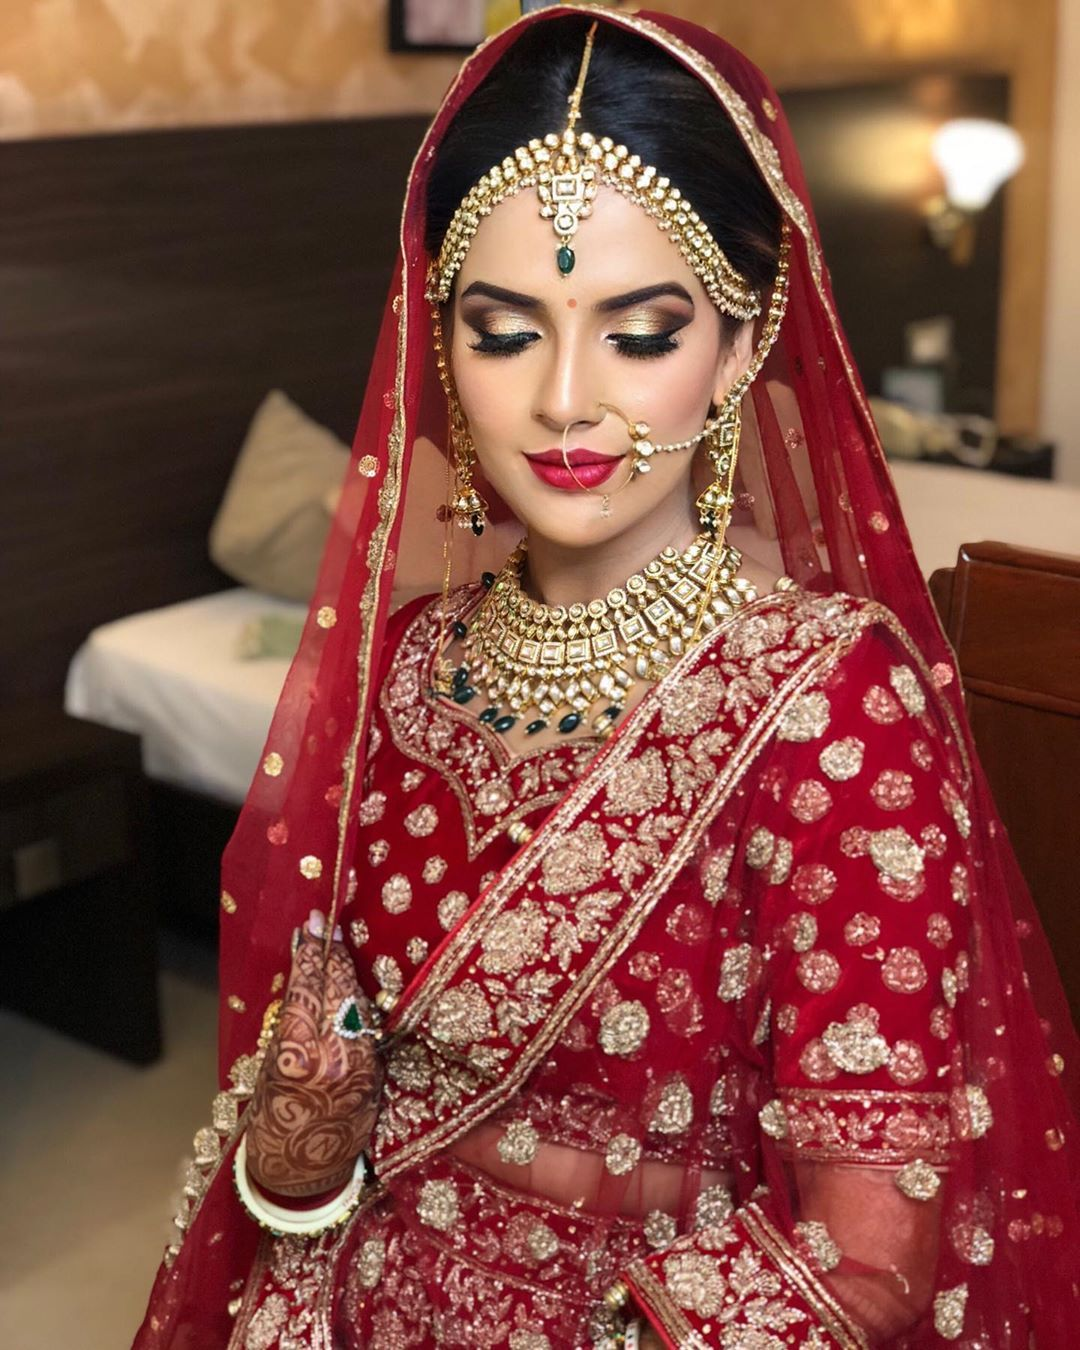 Effects of Airbrush Makeup in 2020 Hd bridal makeup